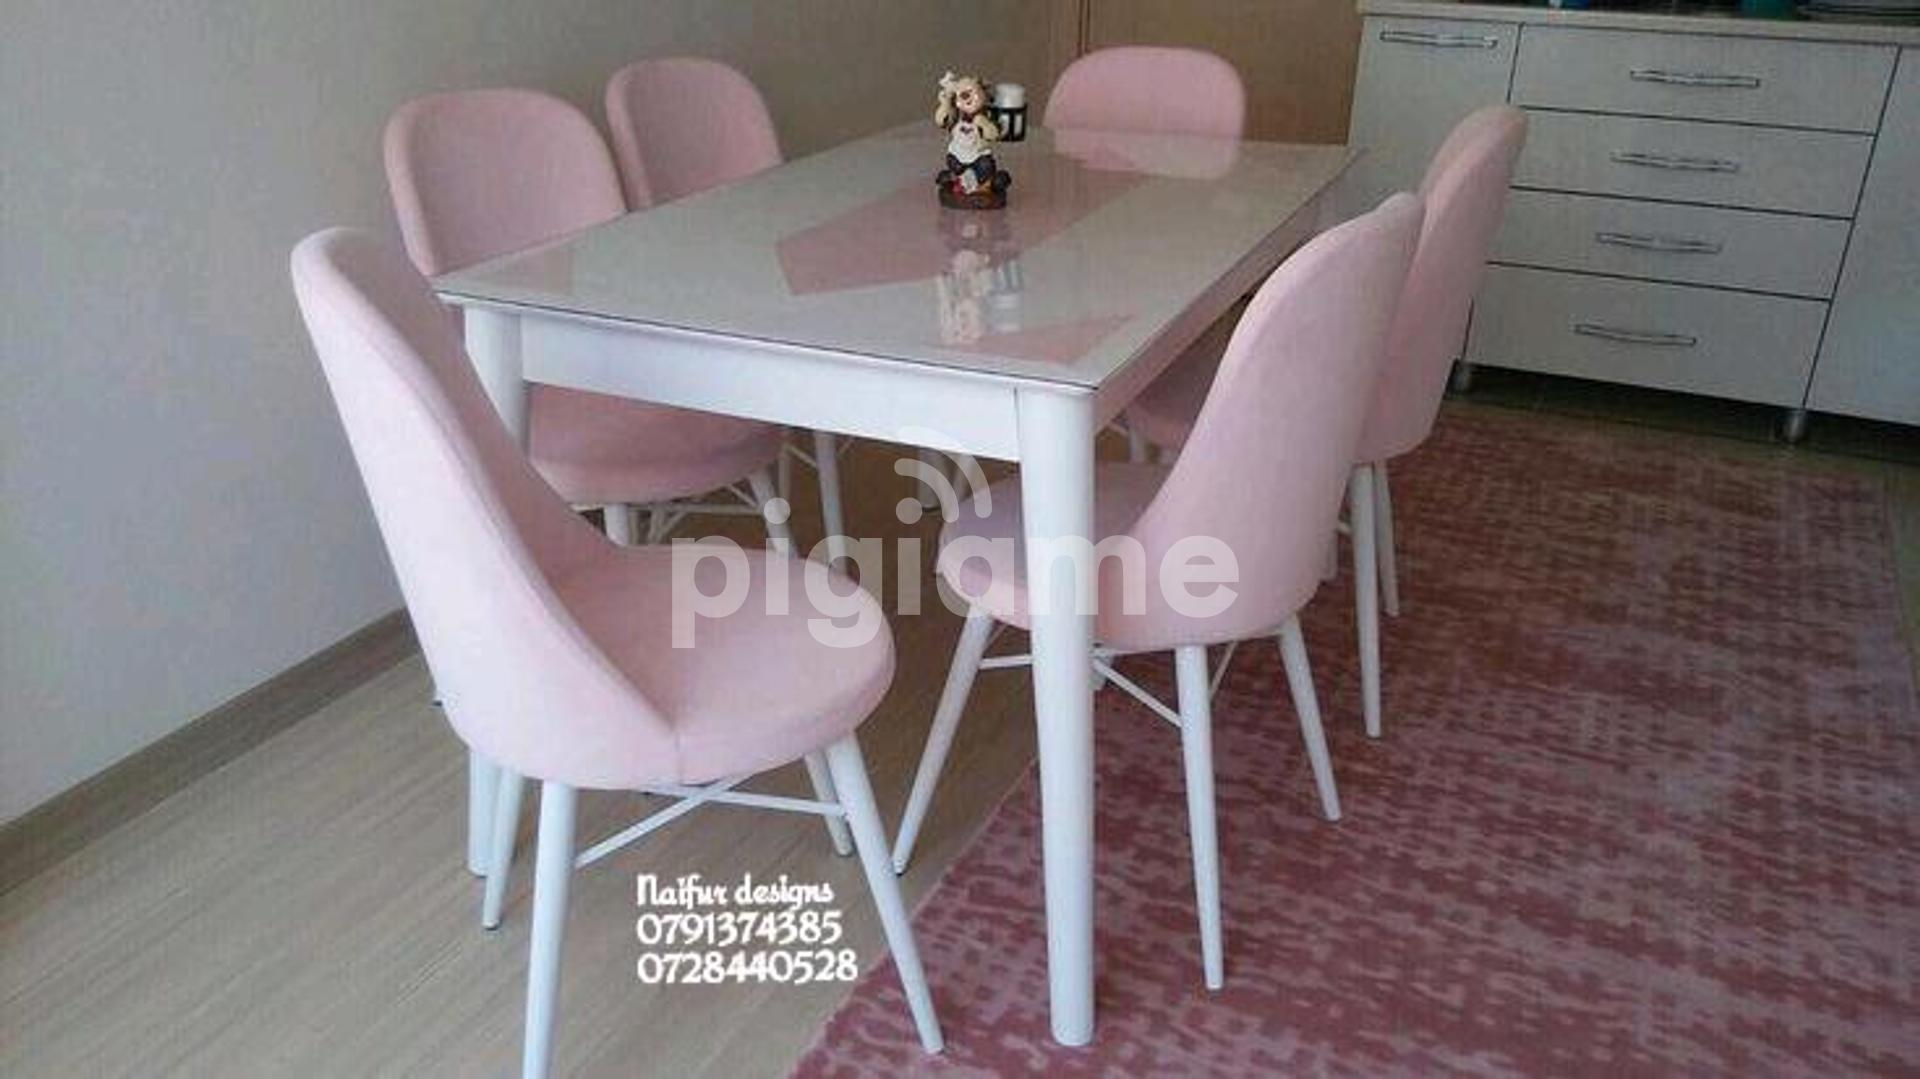 Picture of: Six Seater Dining Set Pink Dining Chairs In Nairobi Pigiame